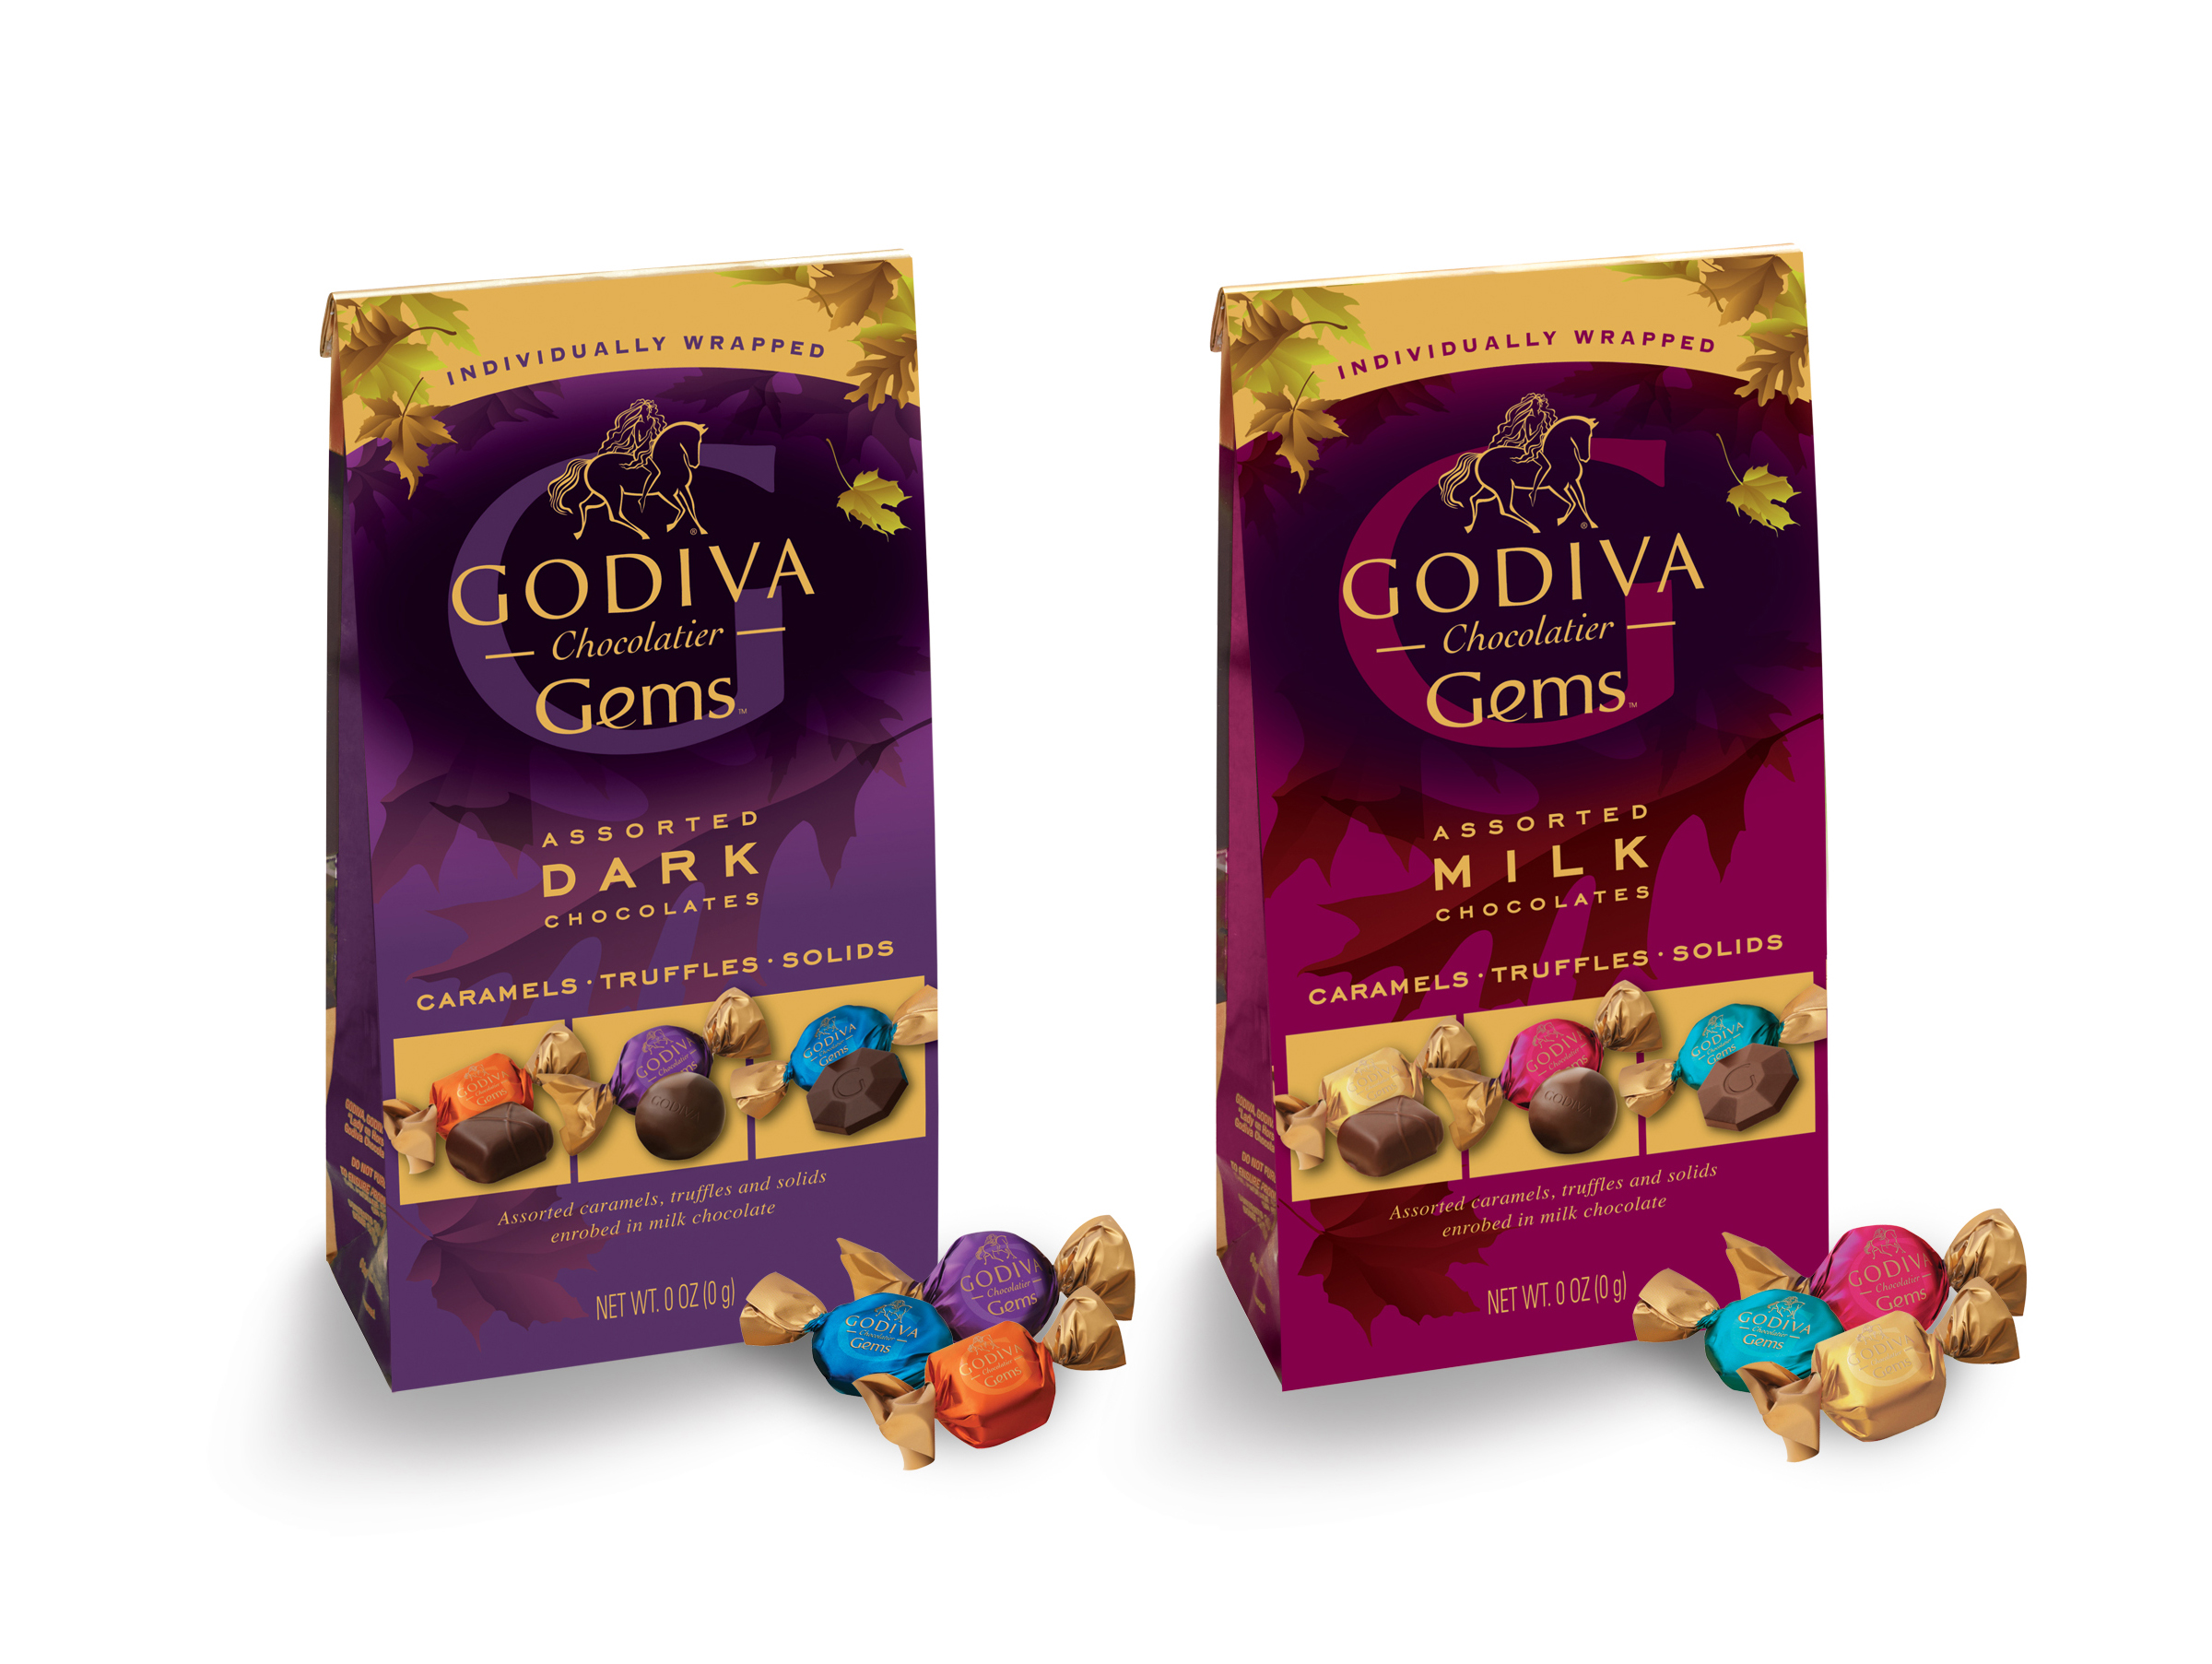 Godiva Gems Package Design - Fall Assortment